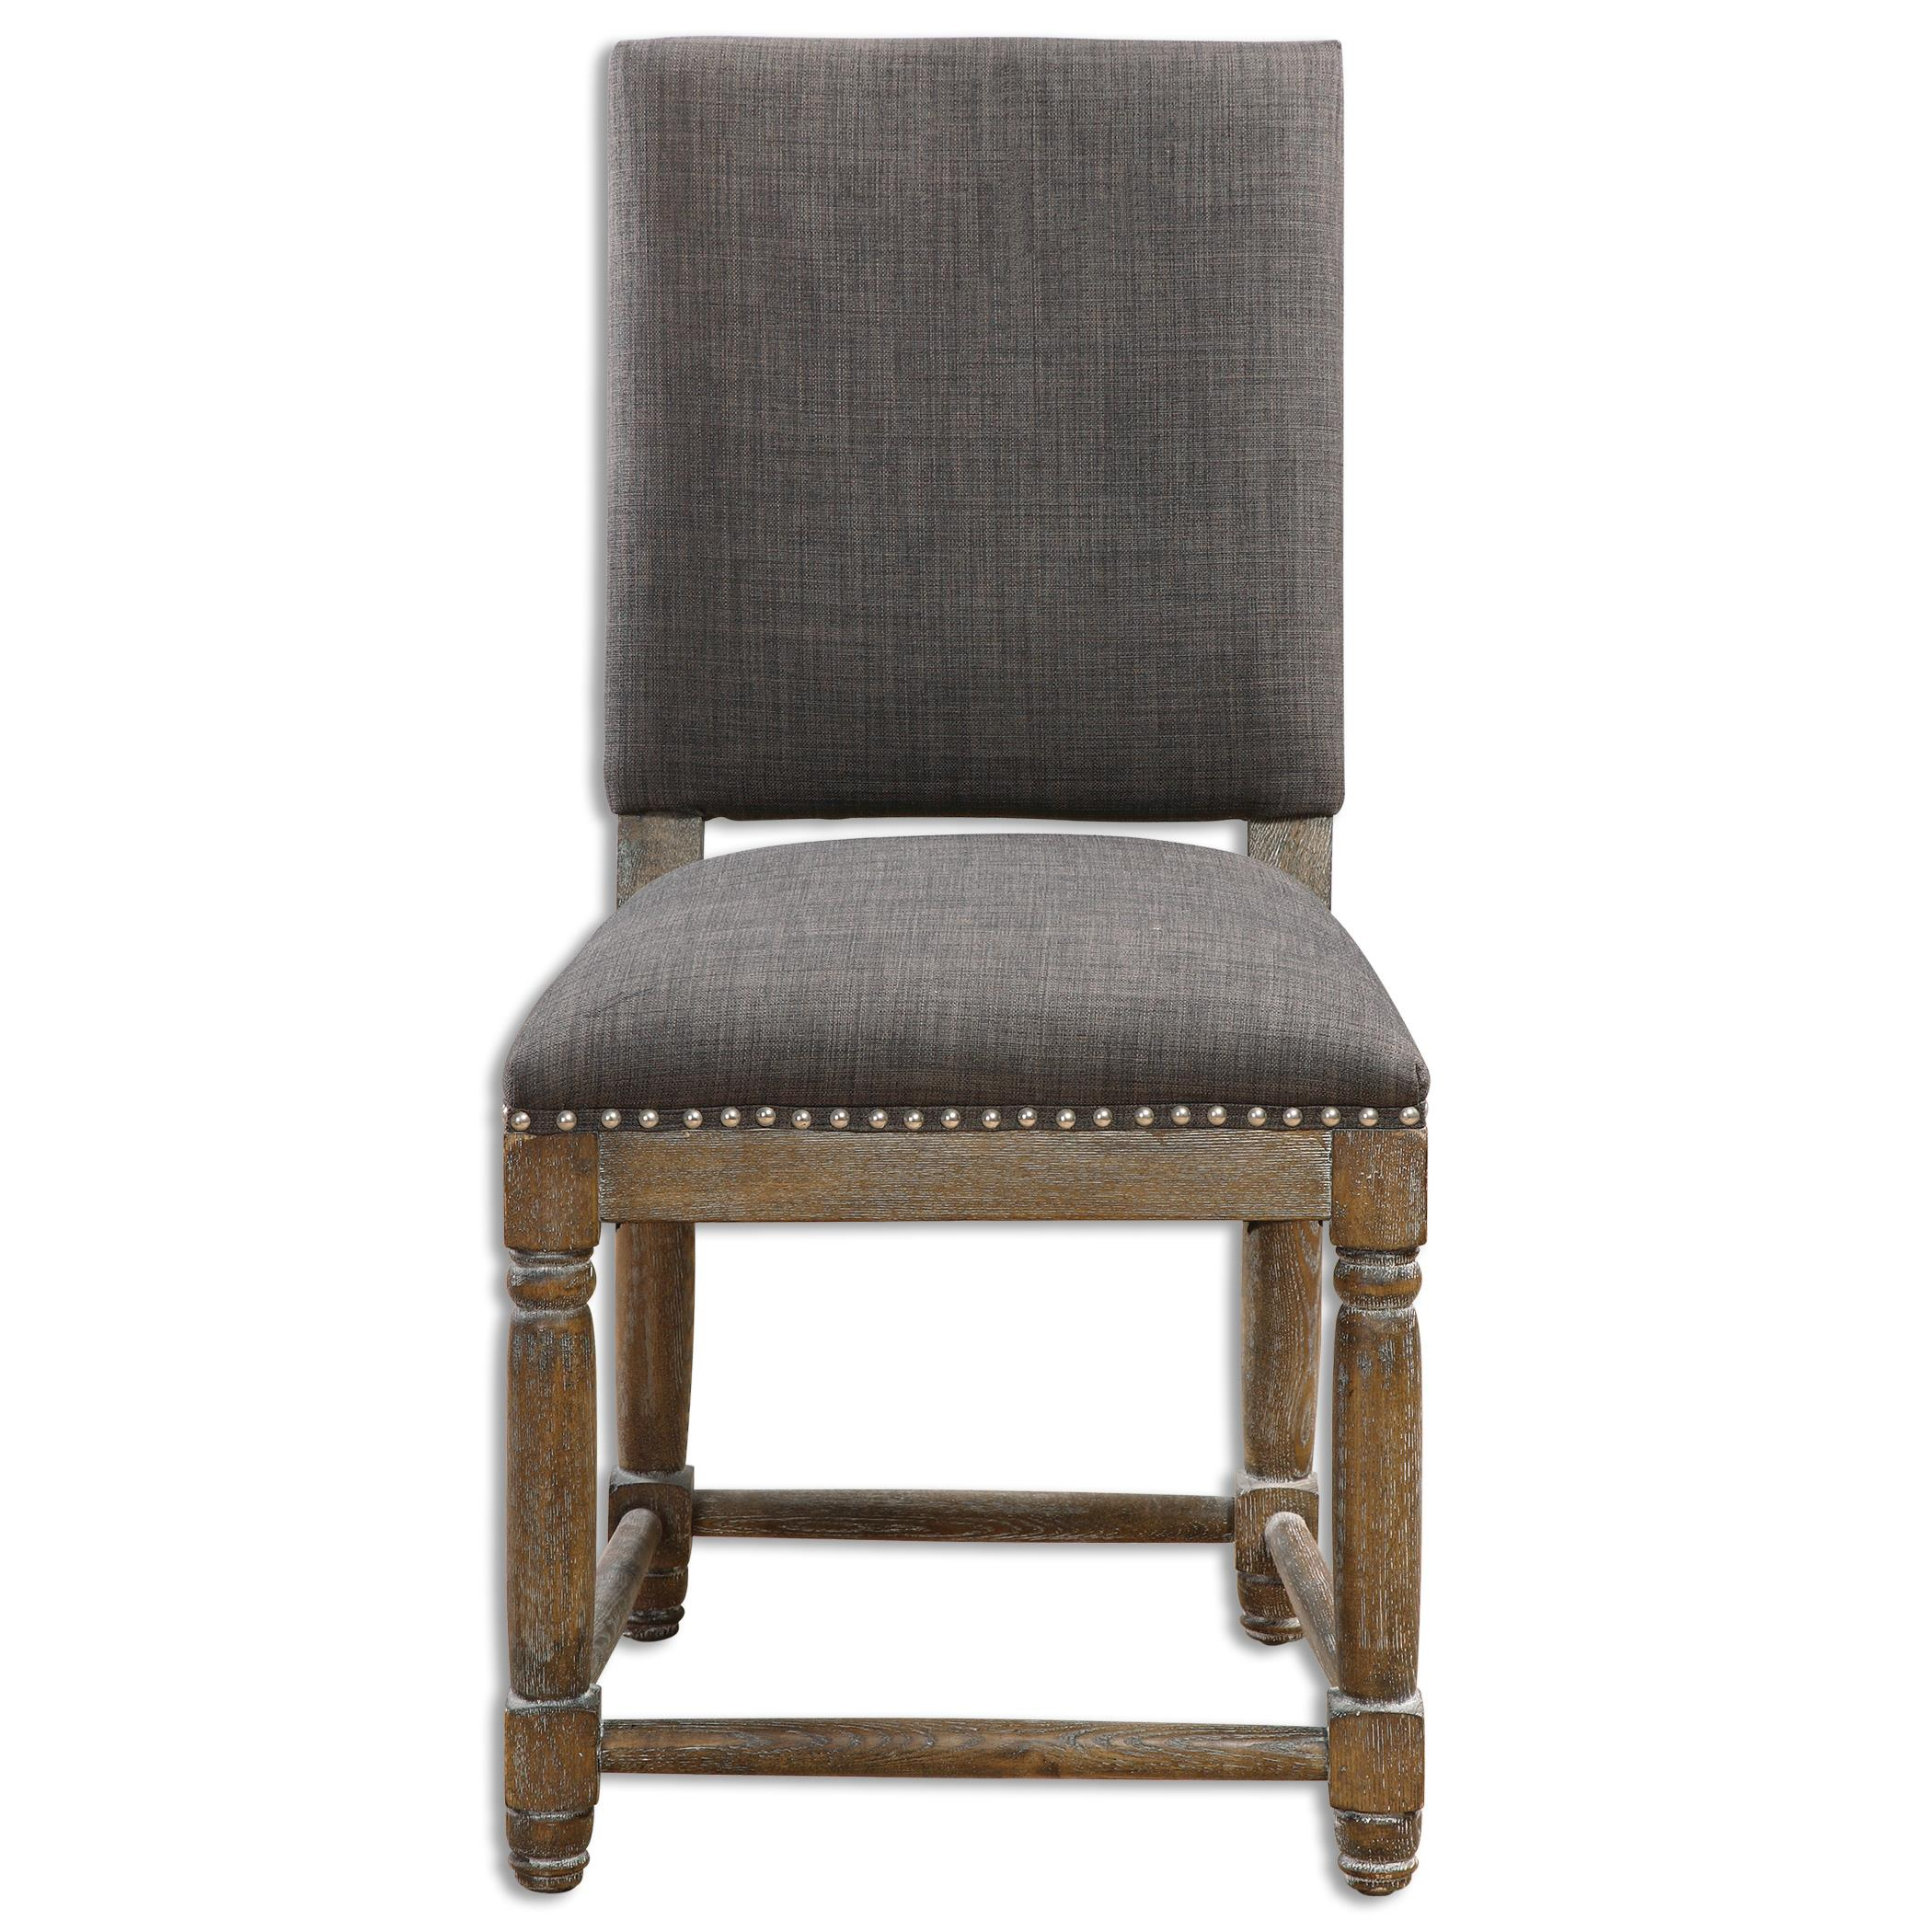 Accent Furniture - Accent Chairs Laurens Gray Accent Chair by Uttermost at Furniture and ApplianceMart